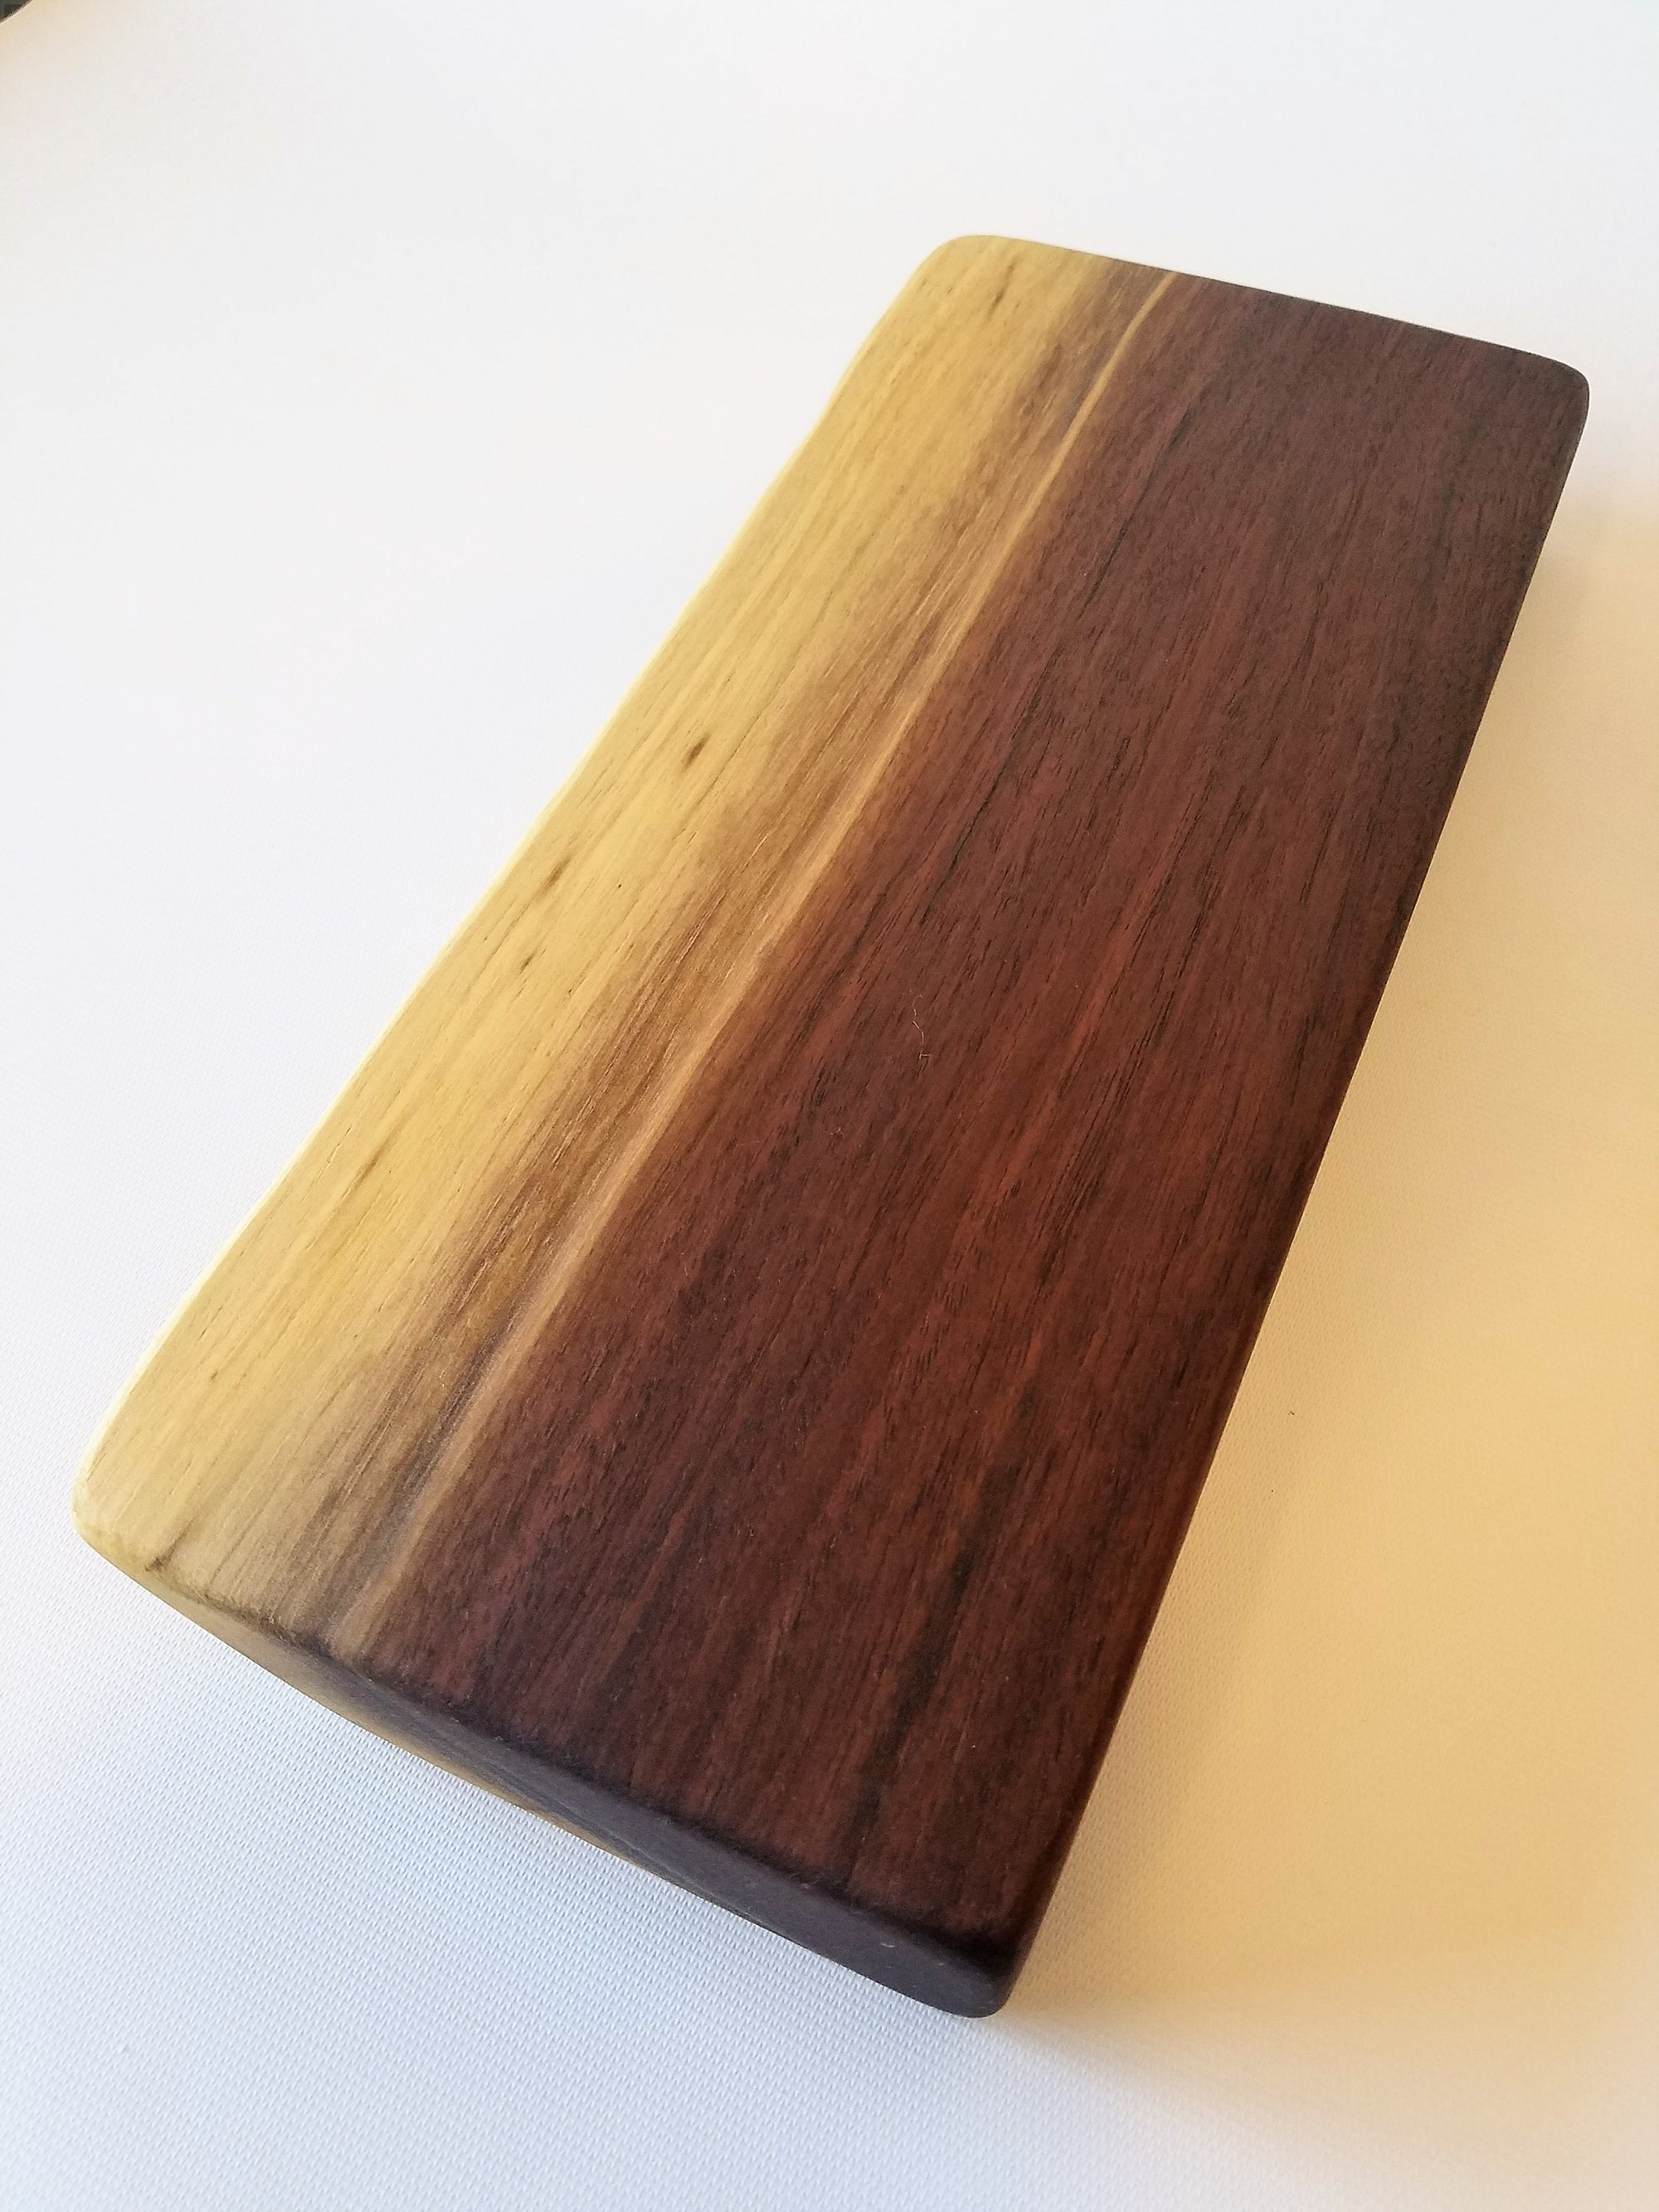 Charcuterie Board- Natural Wood- Serving Board- Food Server- Walnut- Party- Host- Hostess- Table Decor- Gift- Foodie- Chef- Cooking- Platter